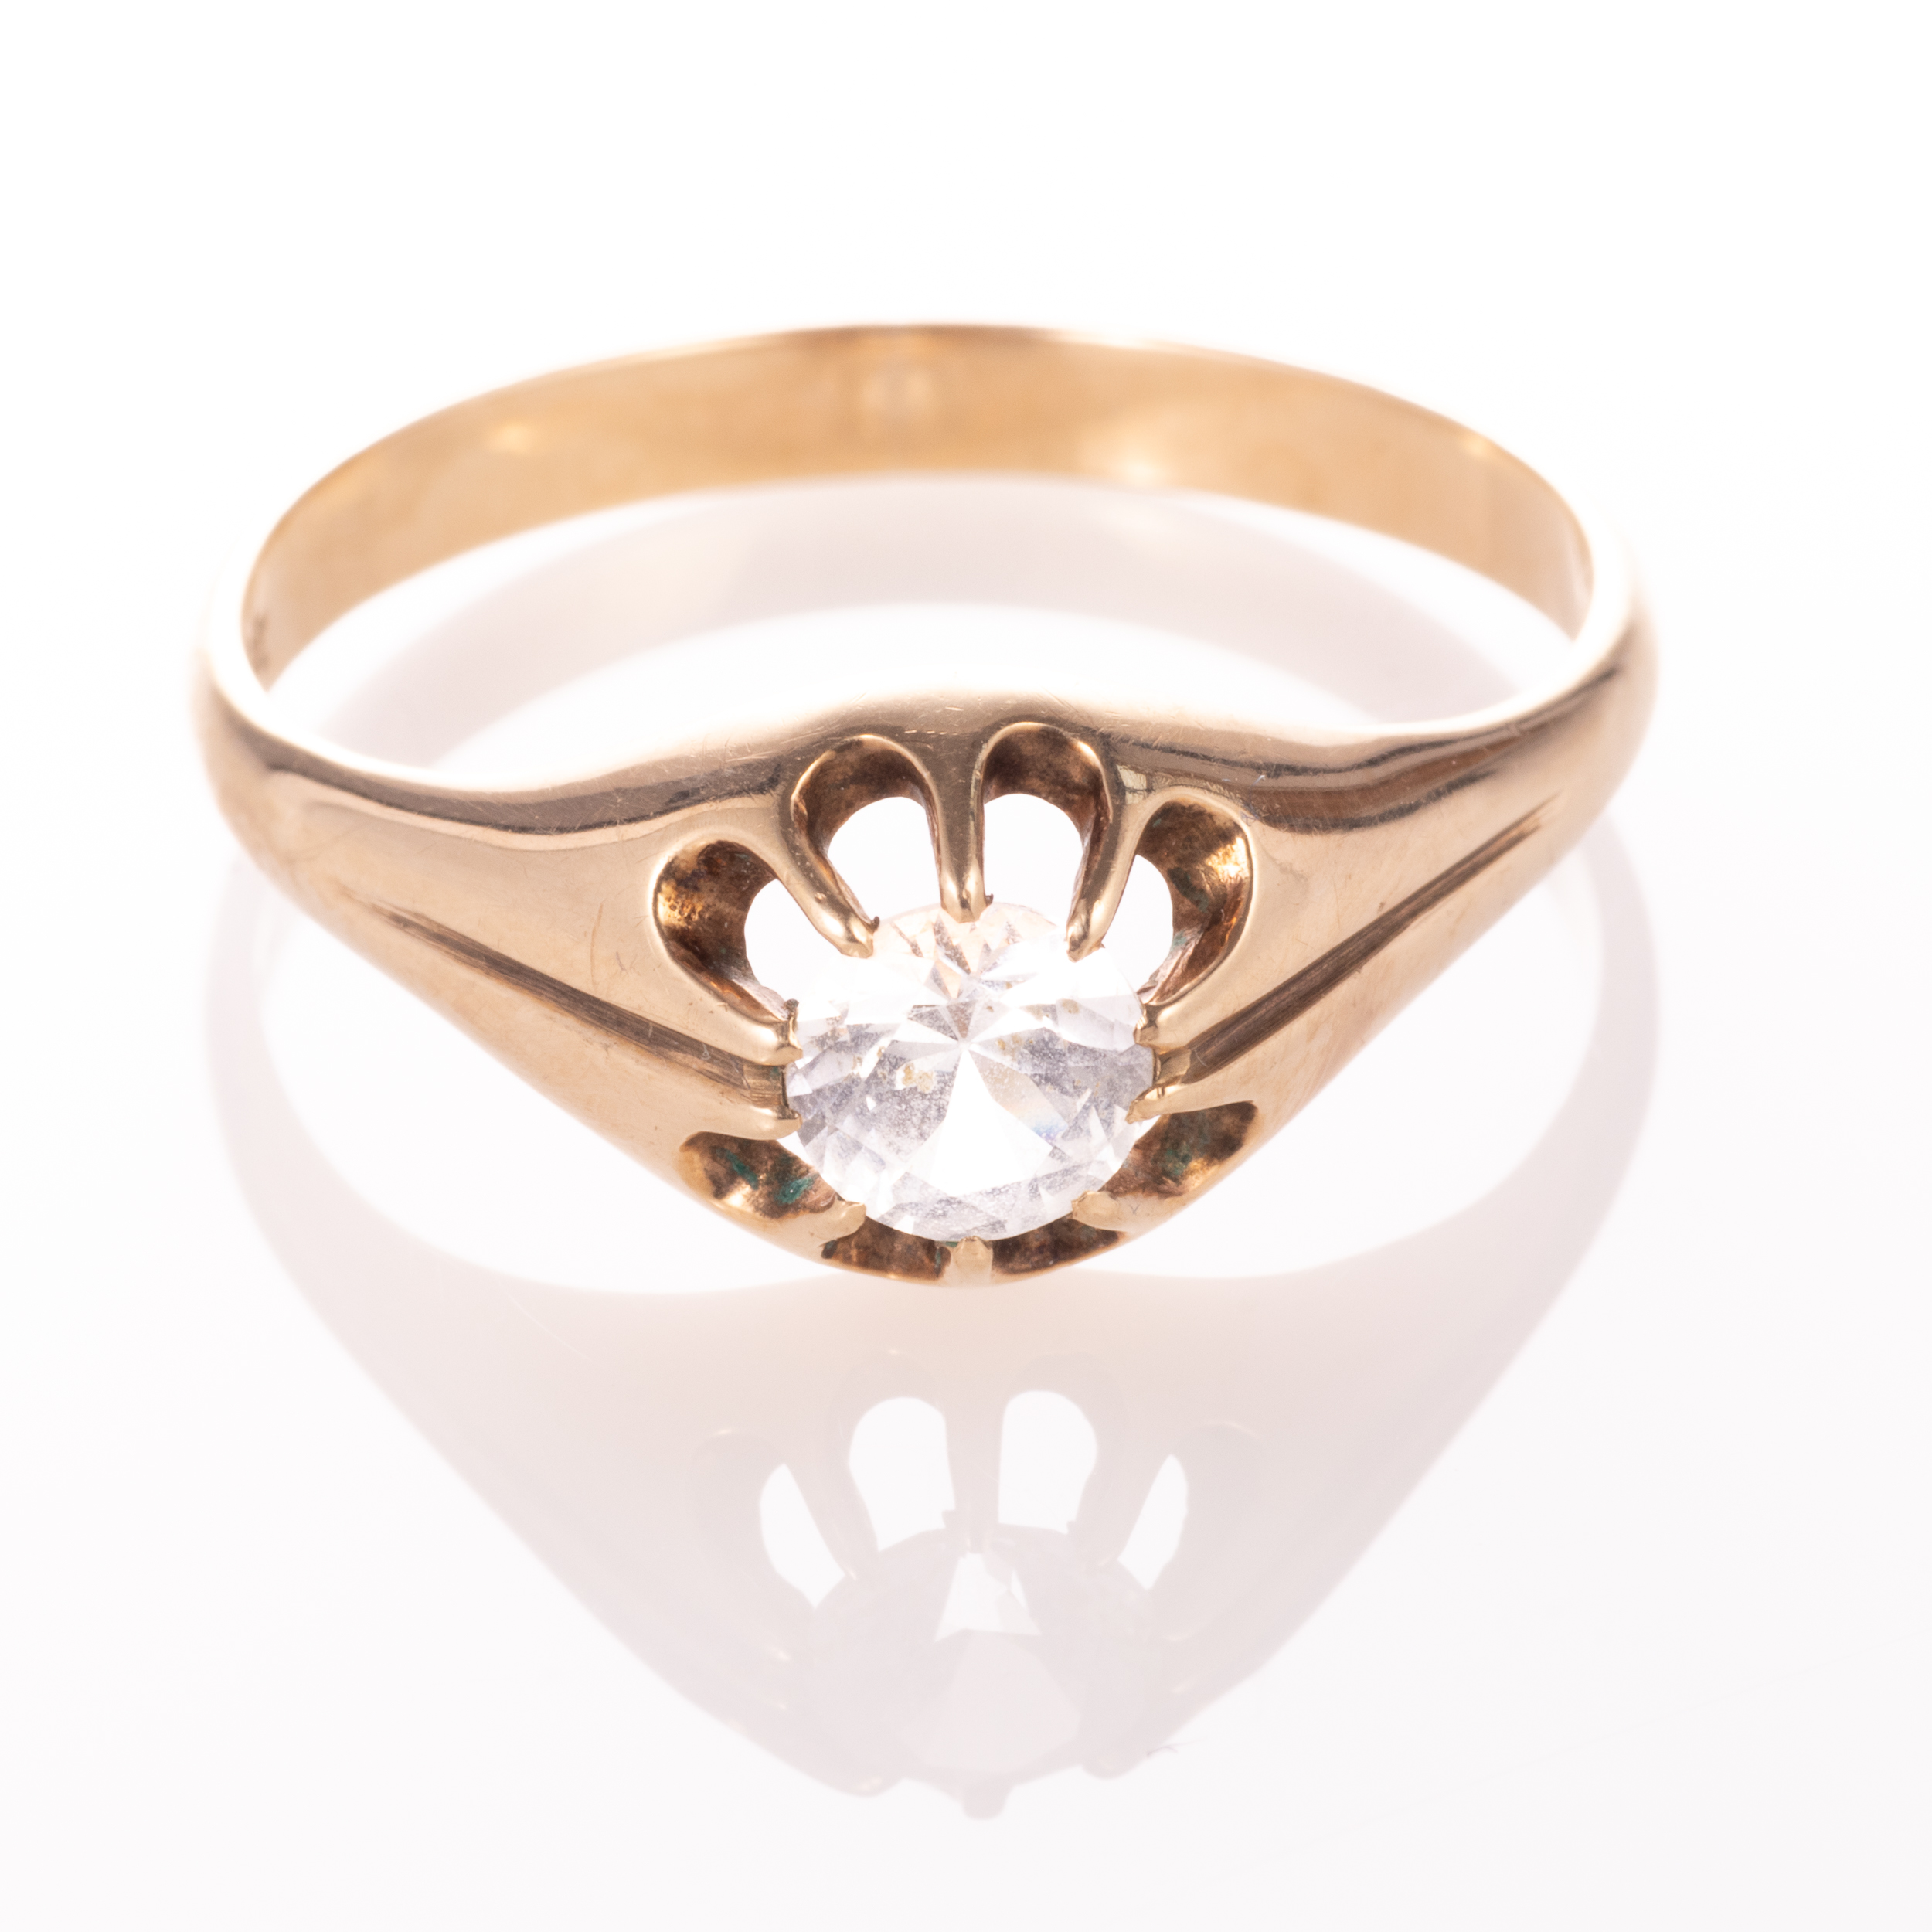 9ct Gold Gypsy Paste Solitaire Ring - Image 3 of 7